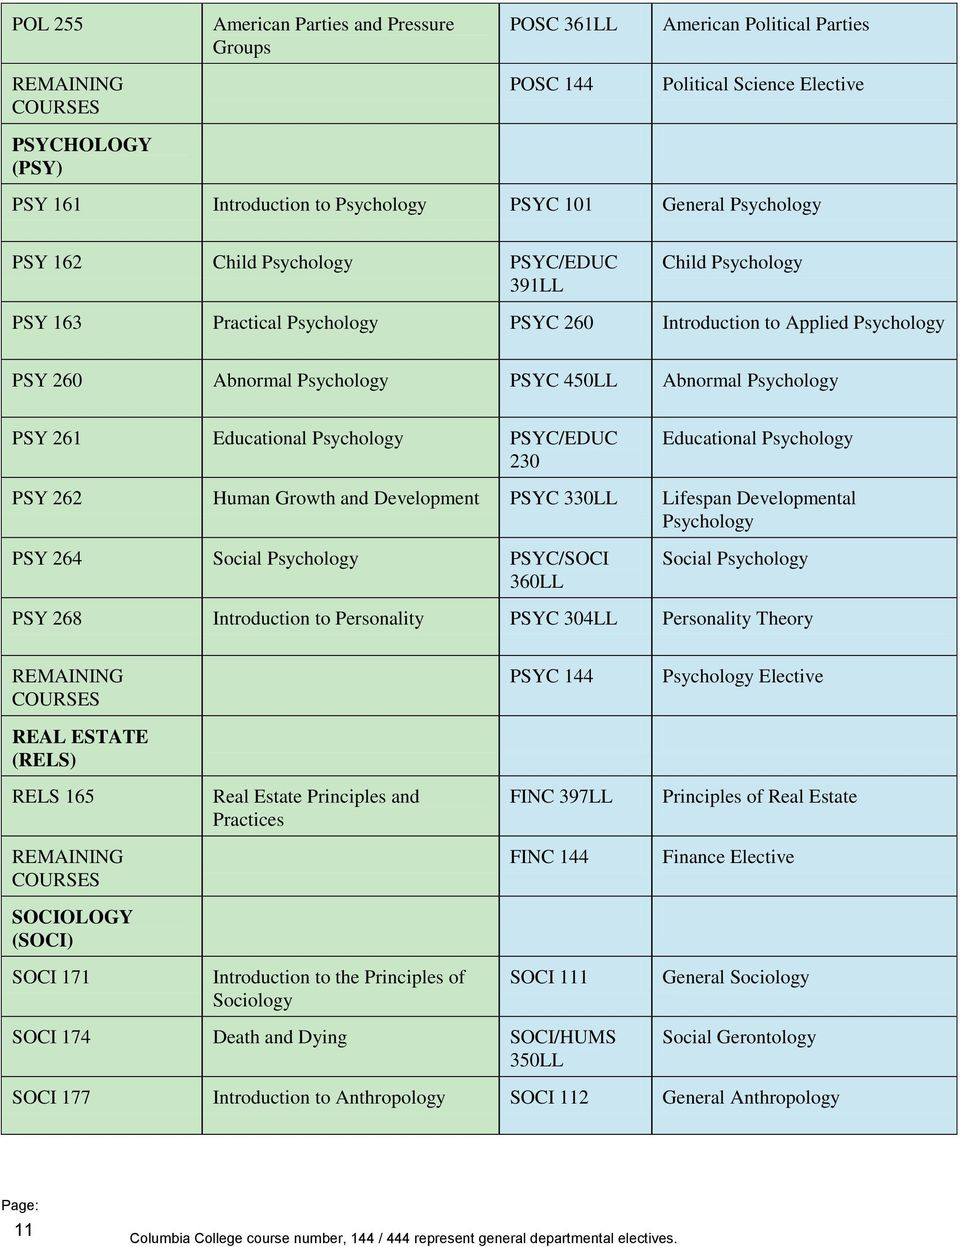 Educational Psychology PSYC/EDUC 230 Educational Psychology PSY 262 Human Growth and Development PSYC 330LL Lifespan Developmental Psychology PSY 264 Social Psychology PSYC/SOCI 360LL Social